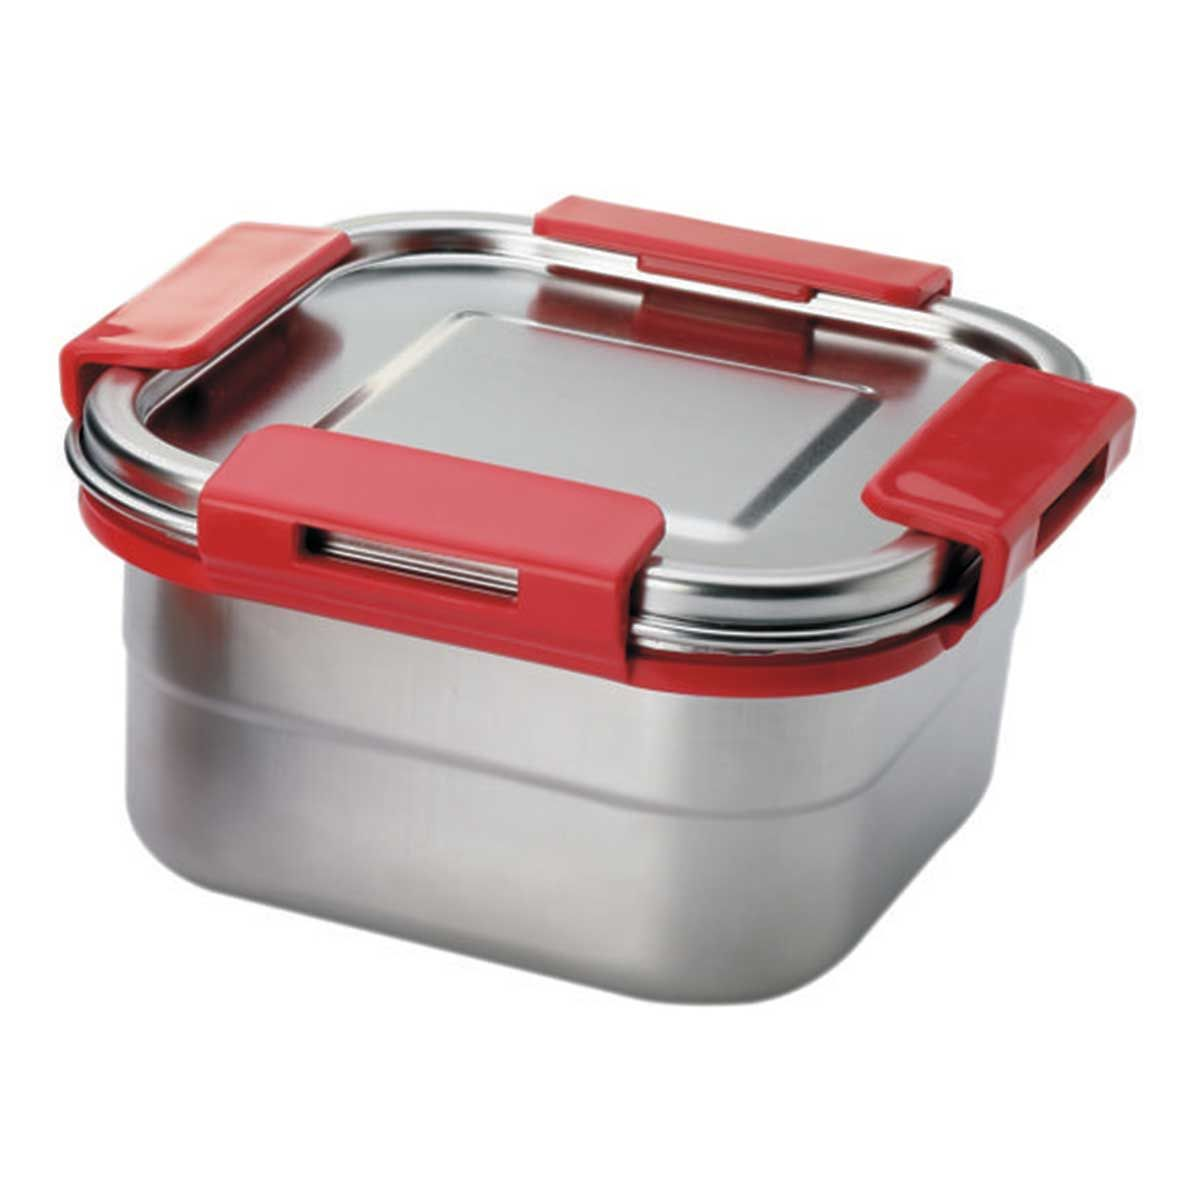 Signoraware Squarex Steel Box with Steel Lid